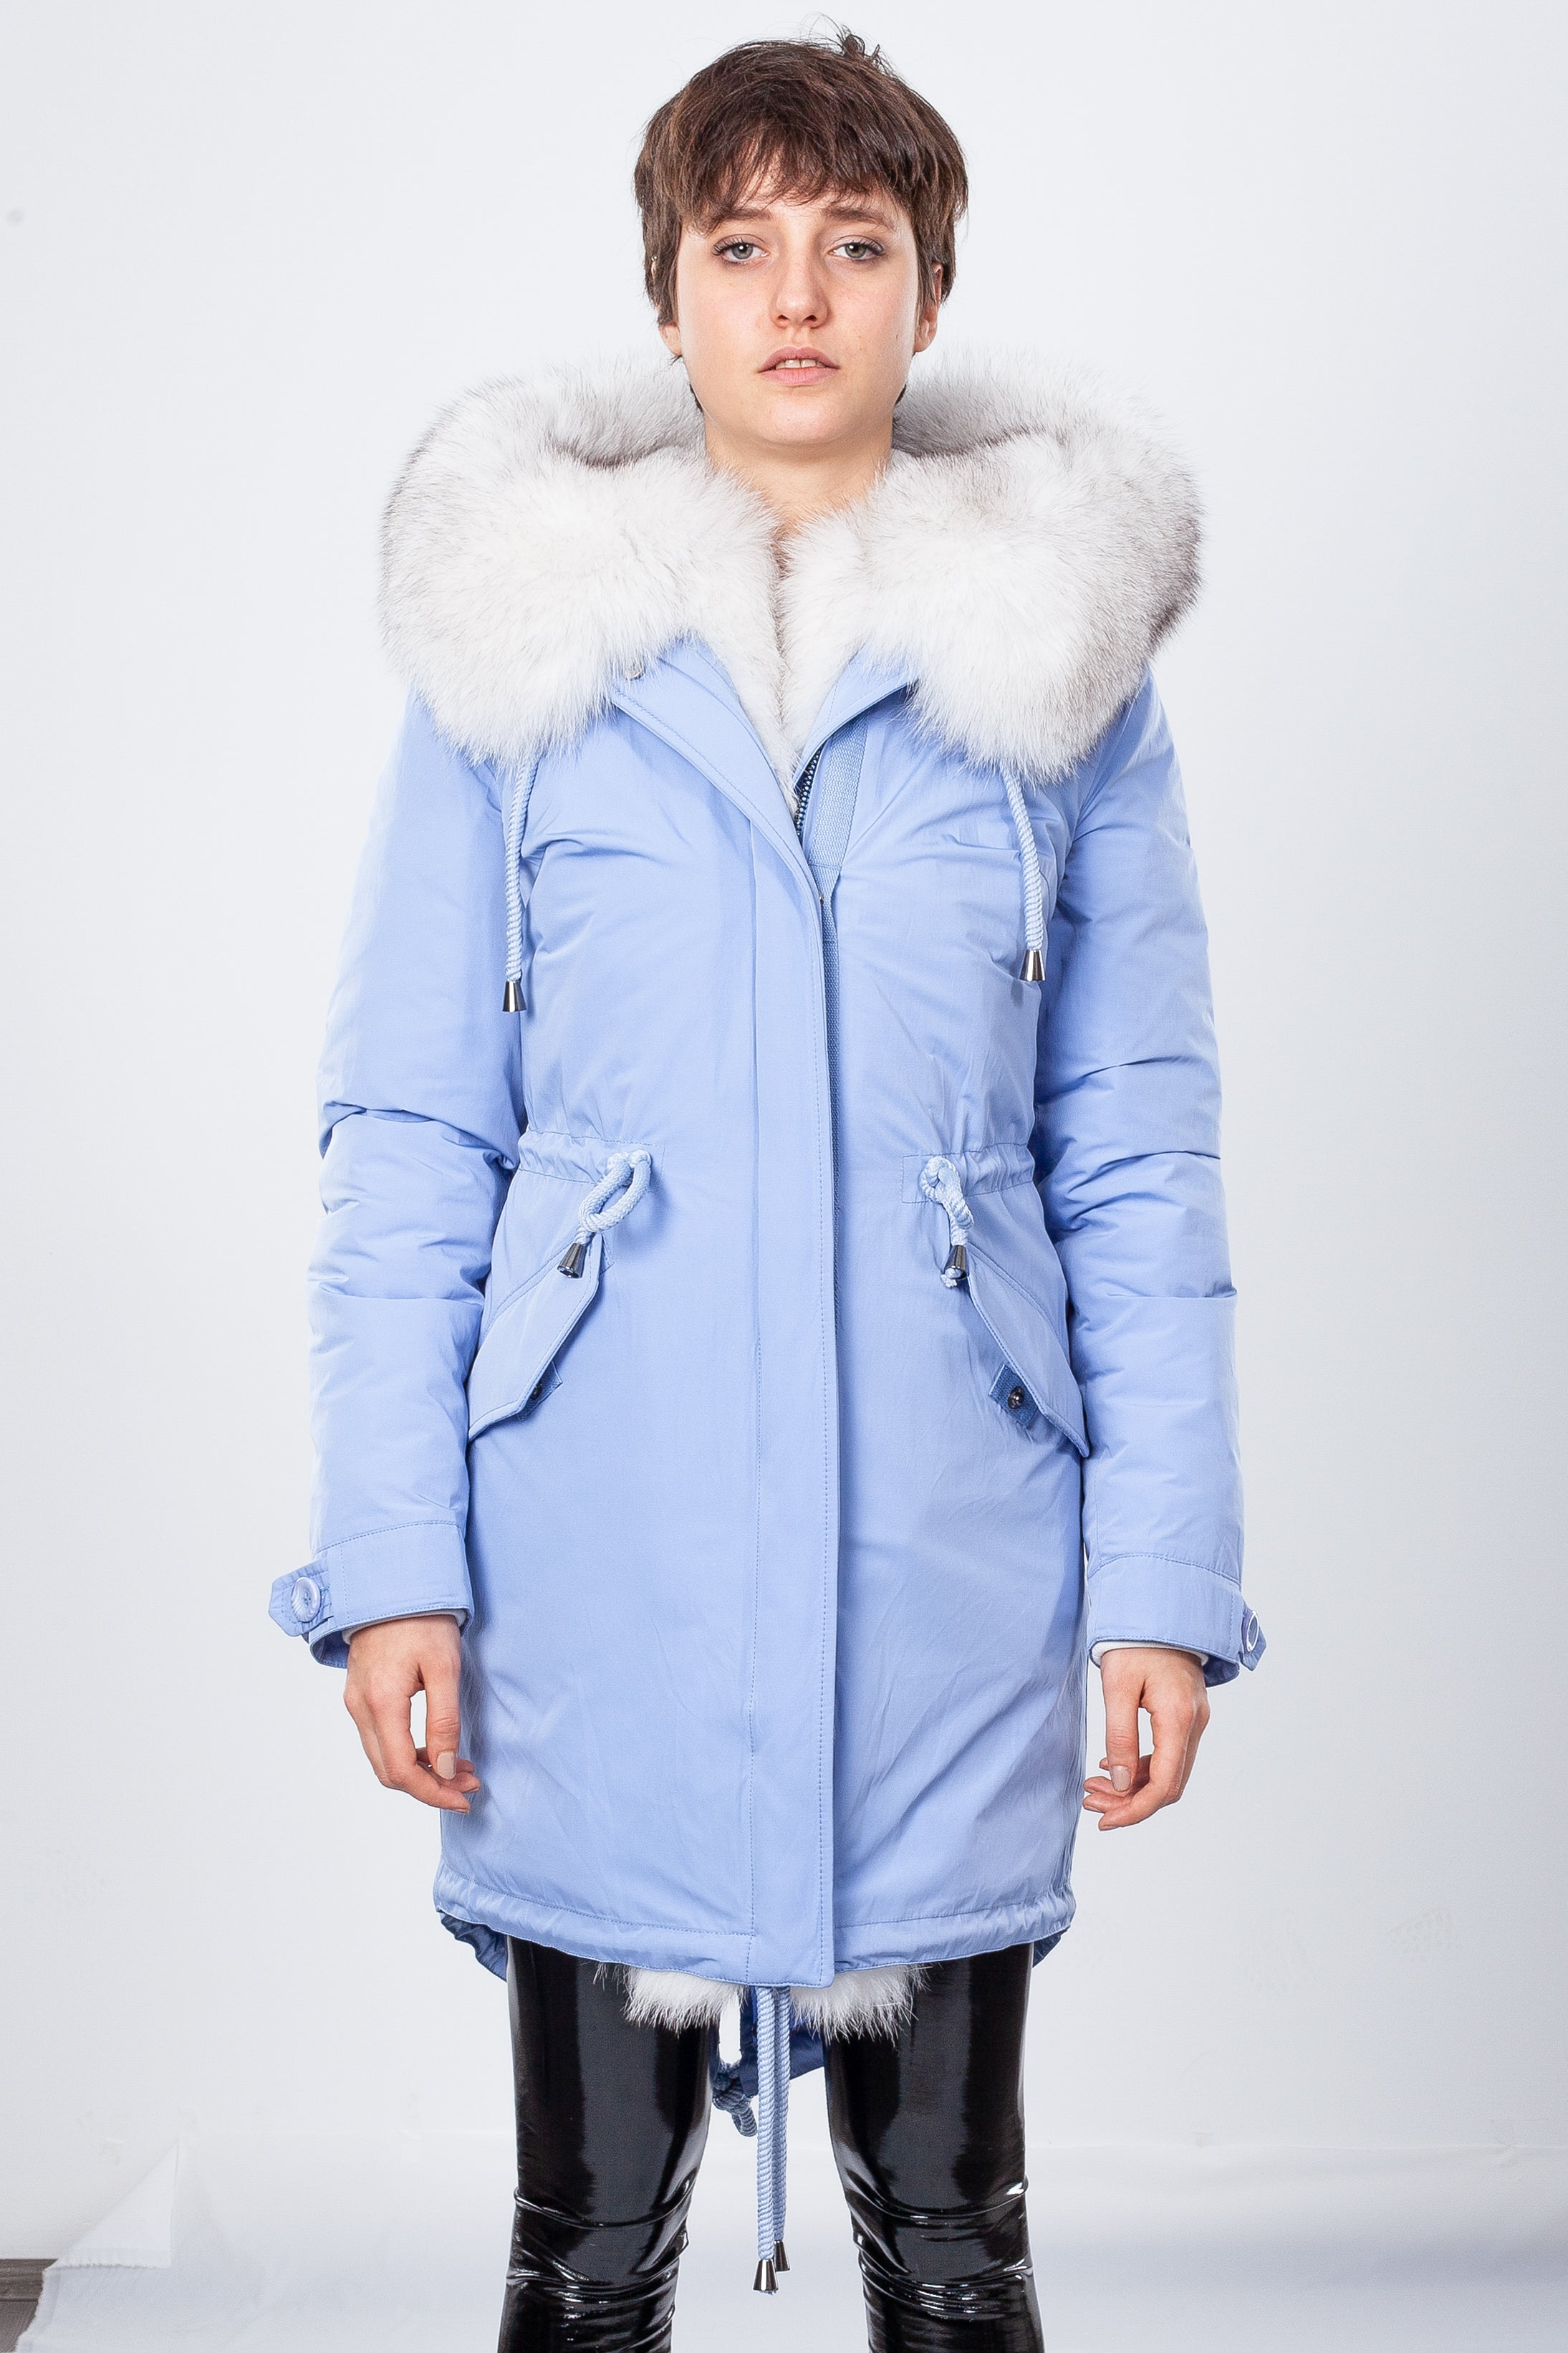 Blue Midi Parka Main Fabric is Waterproof / Raincoat Fabric With Blue Fox